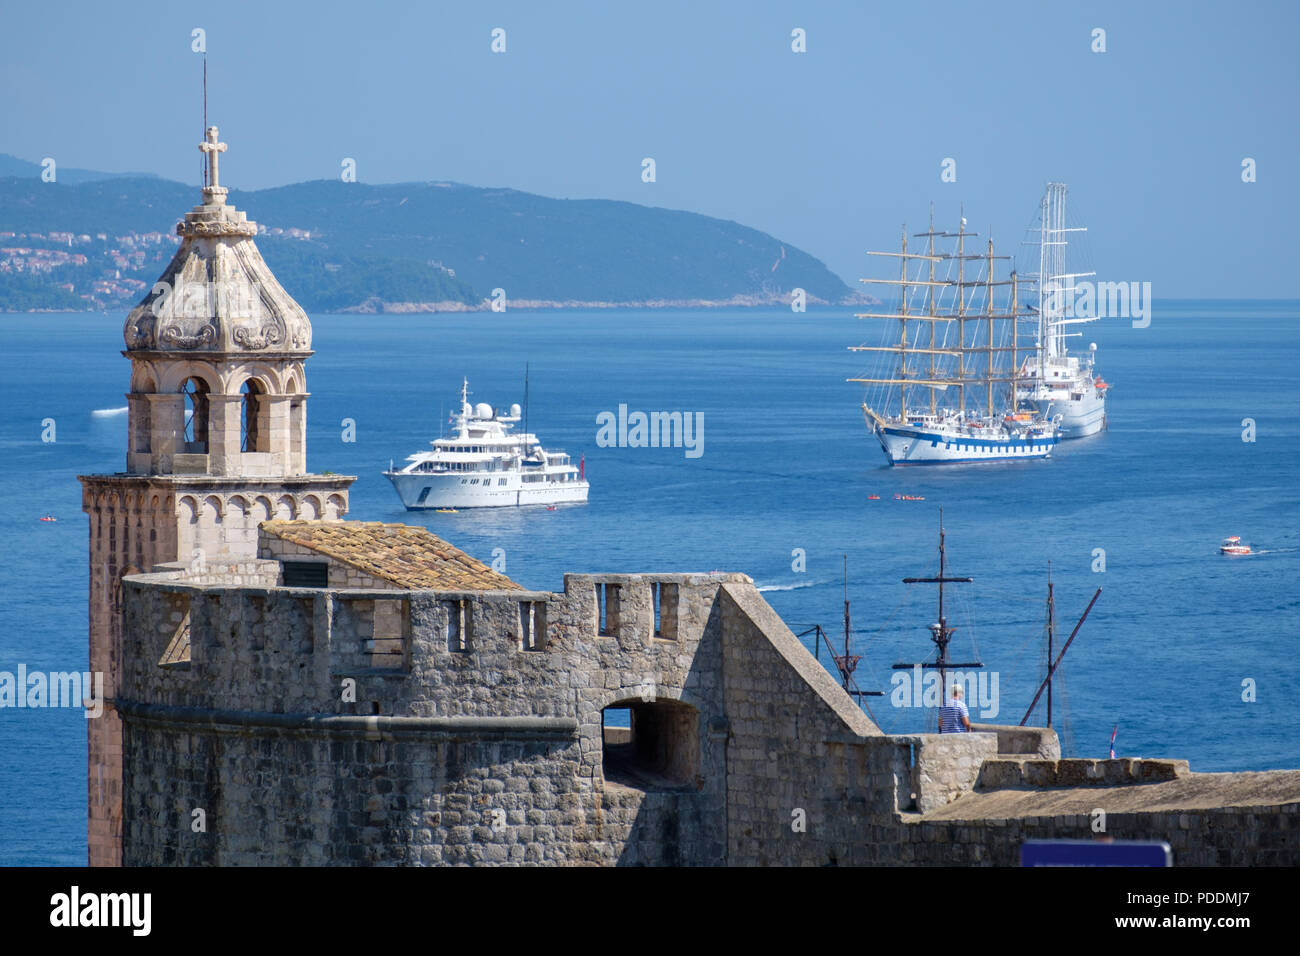 Church tower and the city walls of old town Dubrovnik with sail boats and yachts in the background, Dubrovnik, Croatia, Europe - Stock Image